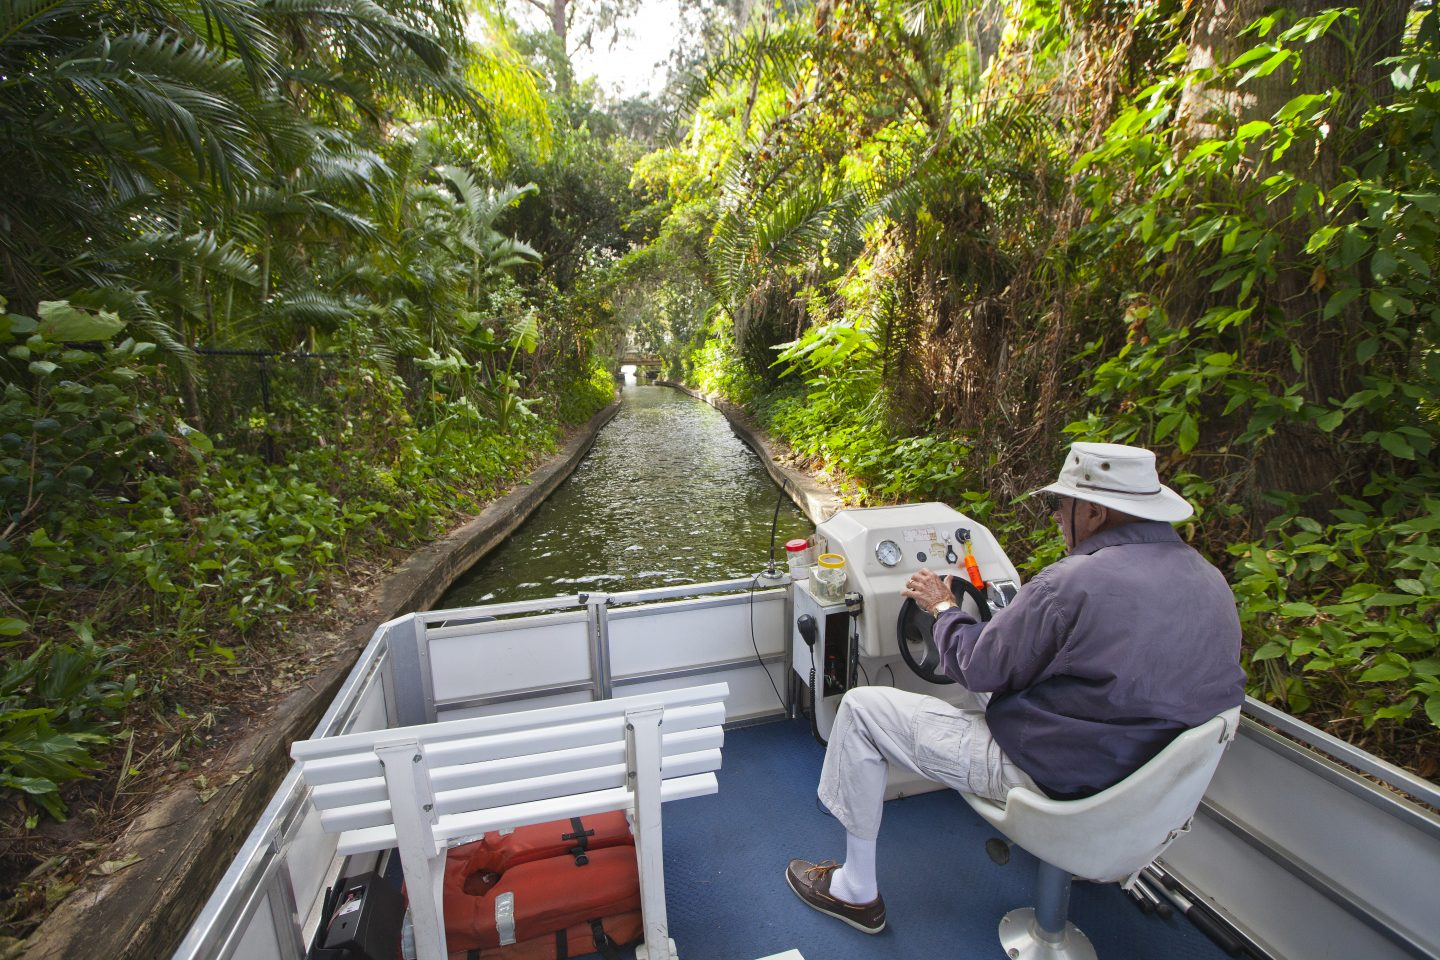 Things to do in Orlando for Adults the captain steers the boat through a canal on the Winter Park Scenic Boat Tour